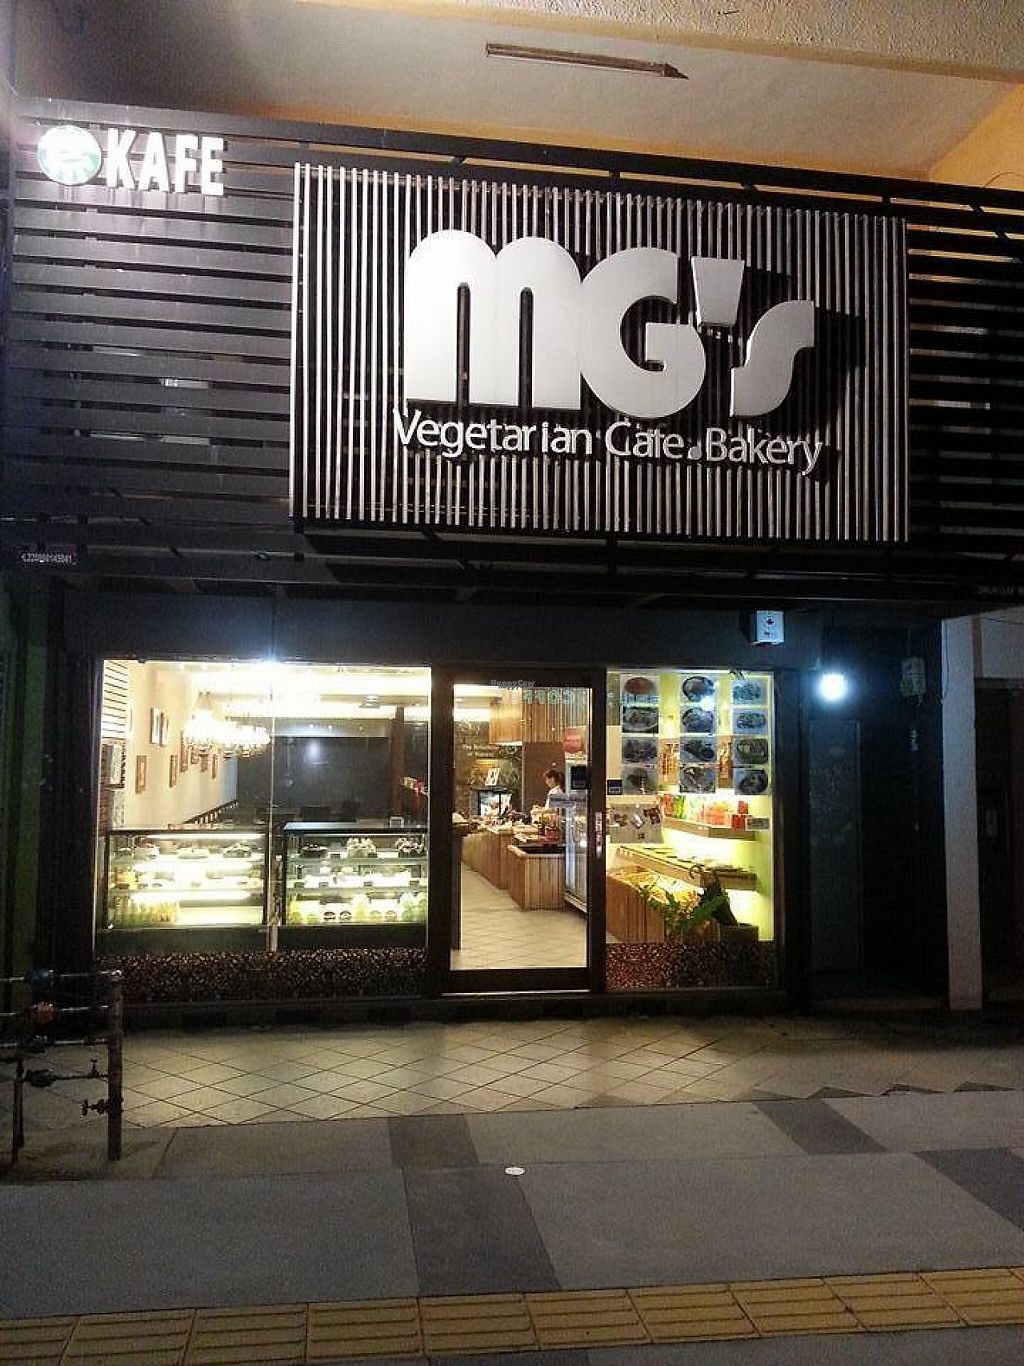 Photo of MG's Vegetarian Cafe Bakery  by Raphael_Dane <br/>outside view of the place <br/> March 8, 2017  - <a href='/contact/abuse/image/36486/234252'>Report</a>